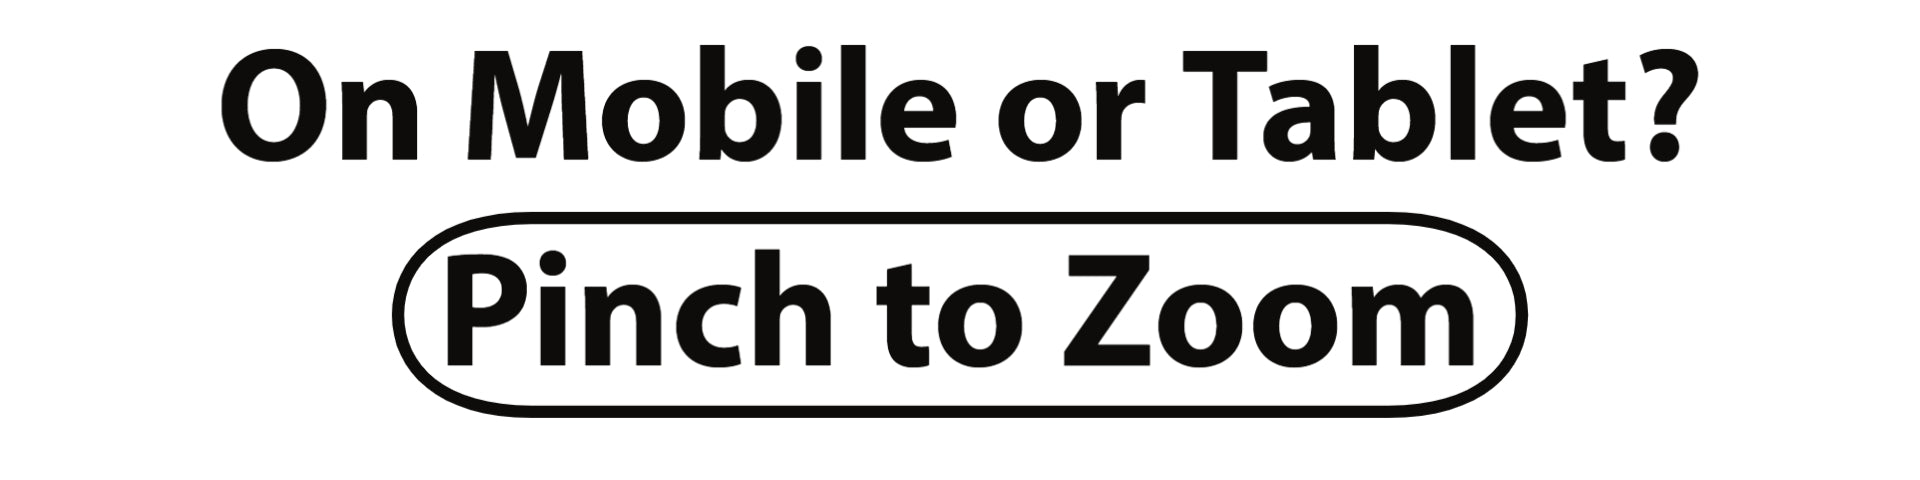 On mobile or tablet? Pinch to Zoom | Stigma Watches™ - O